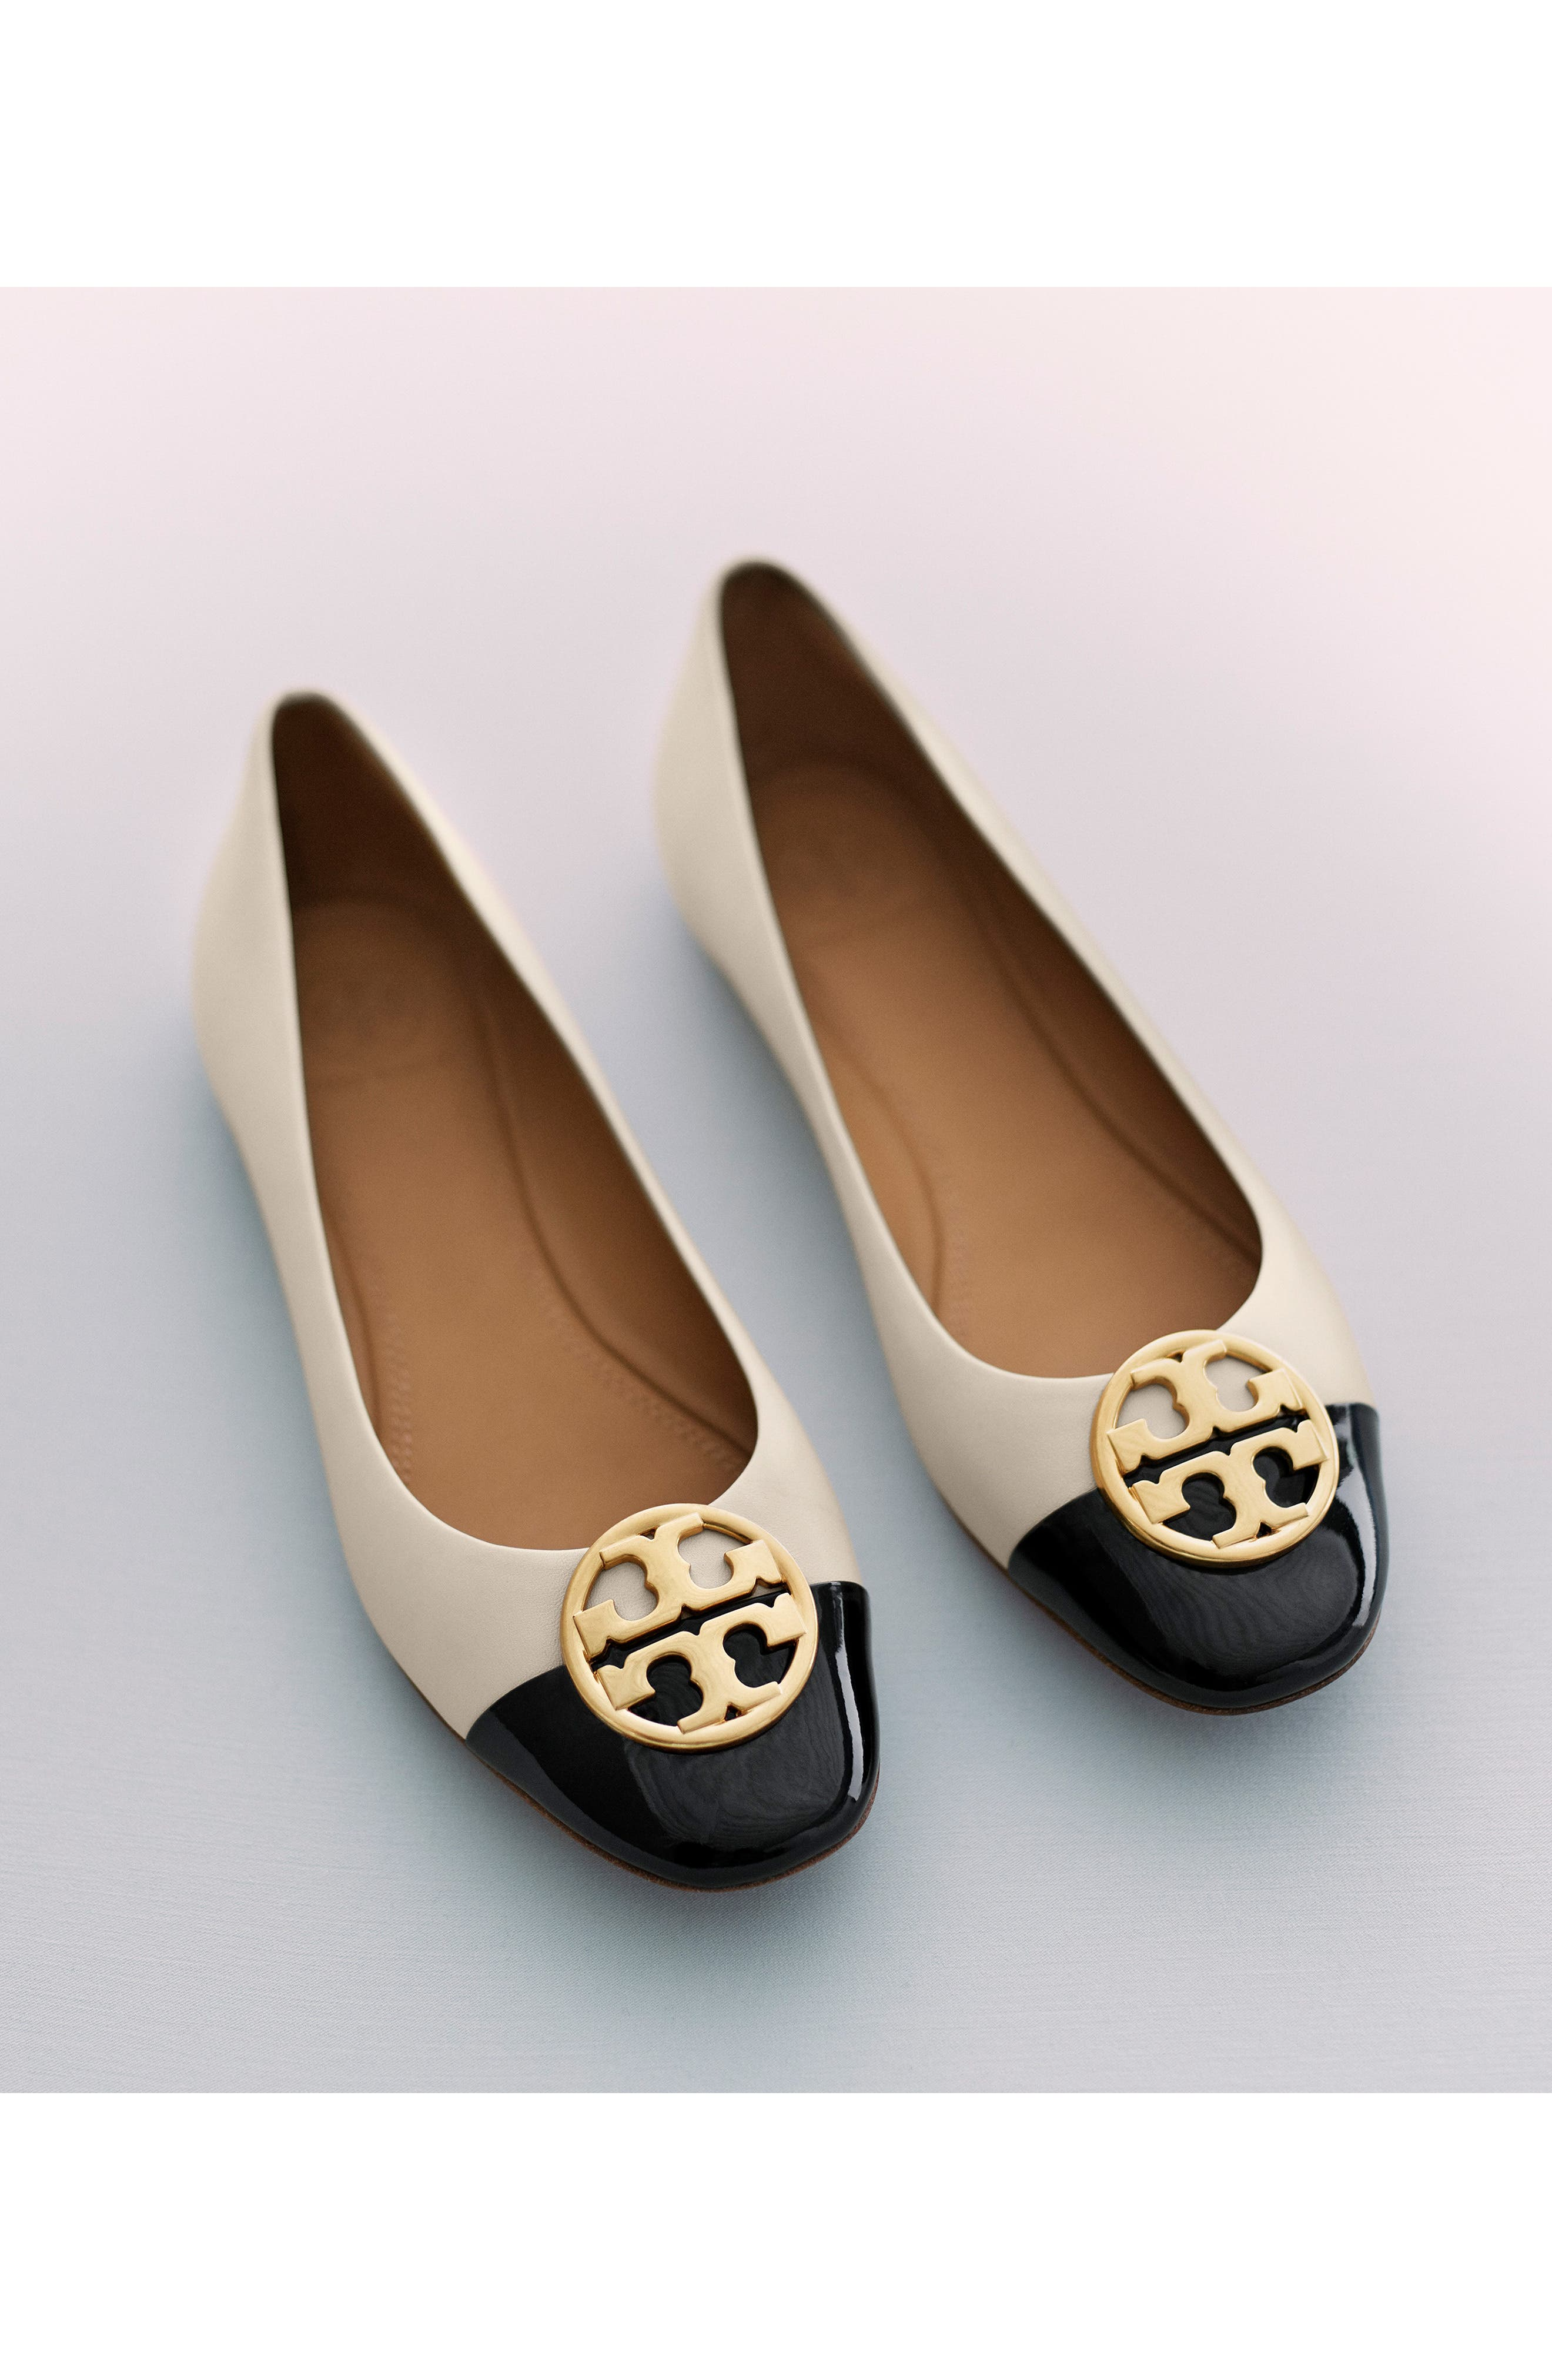 TORY BURCH, Chelsea Cap Toe Ballet Flat, Alternate thumbnail 7, color, BLACK